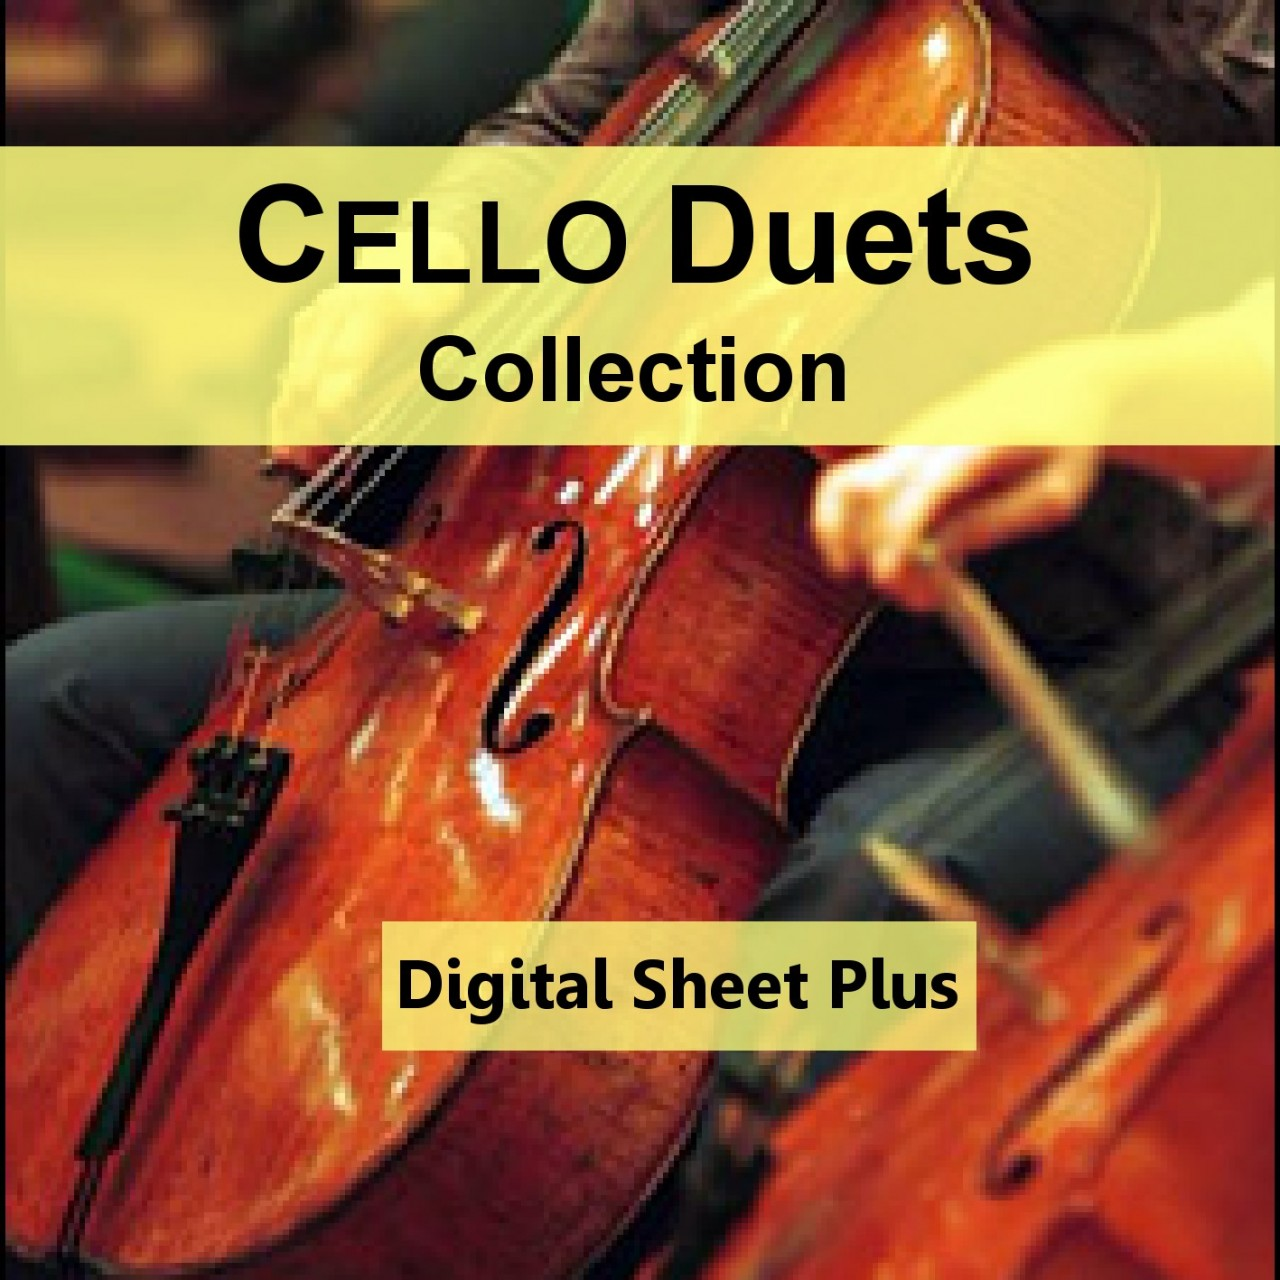 Cello Duets Sheet Music Collection Digitalsheetplus Com